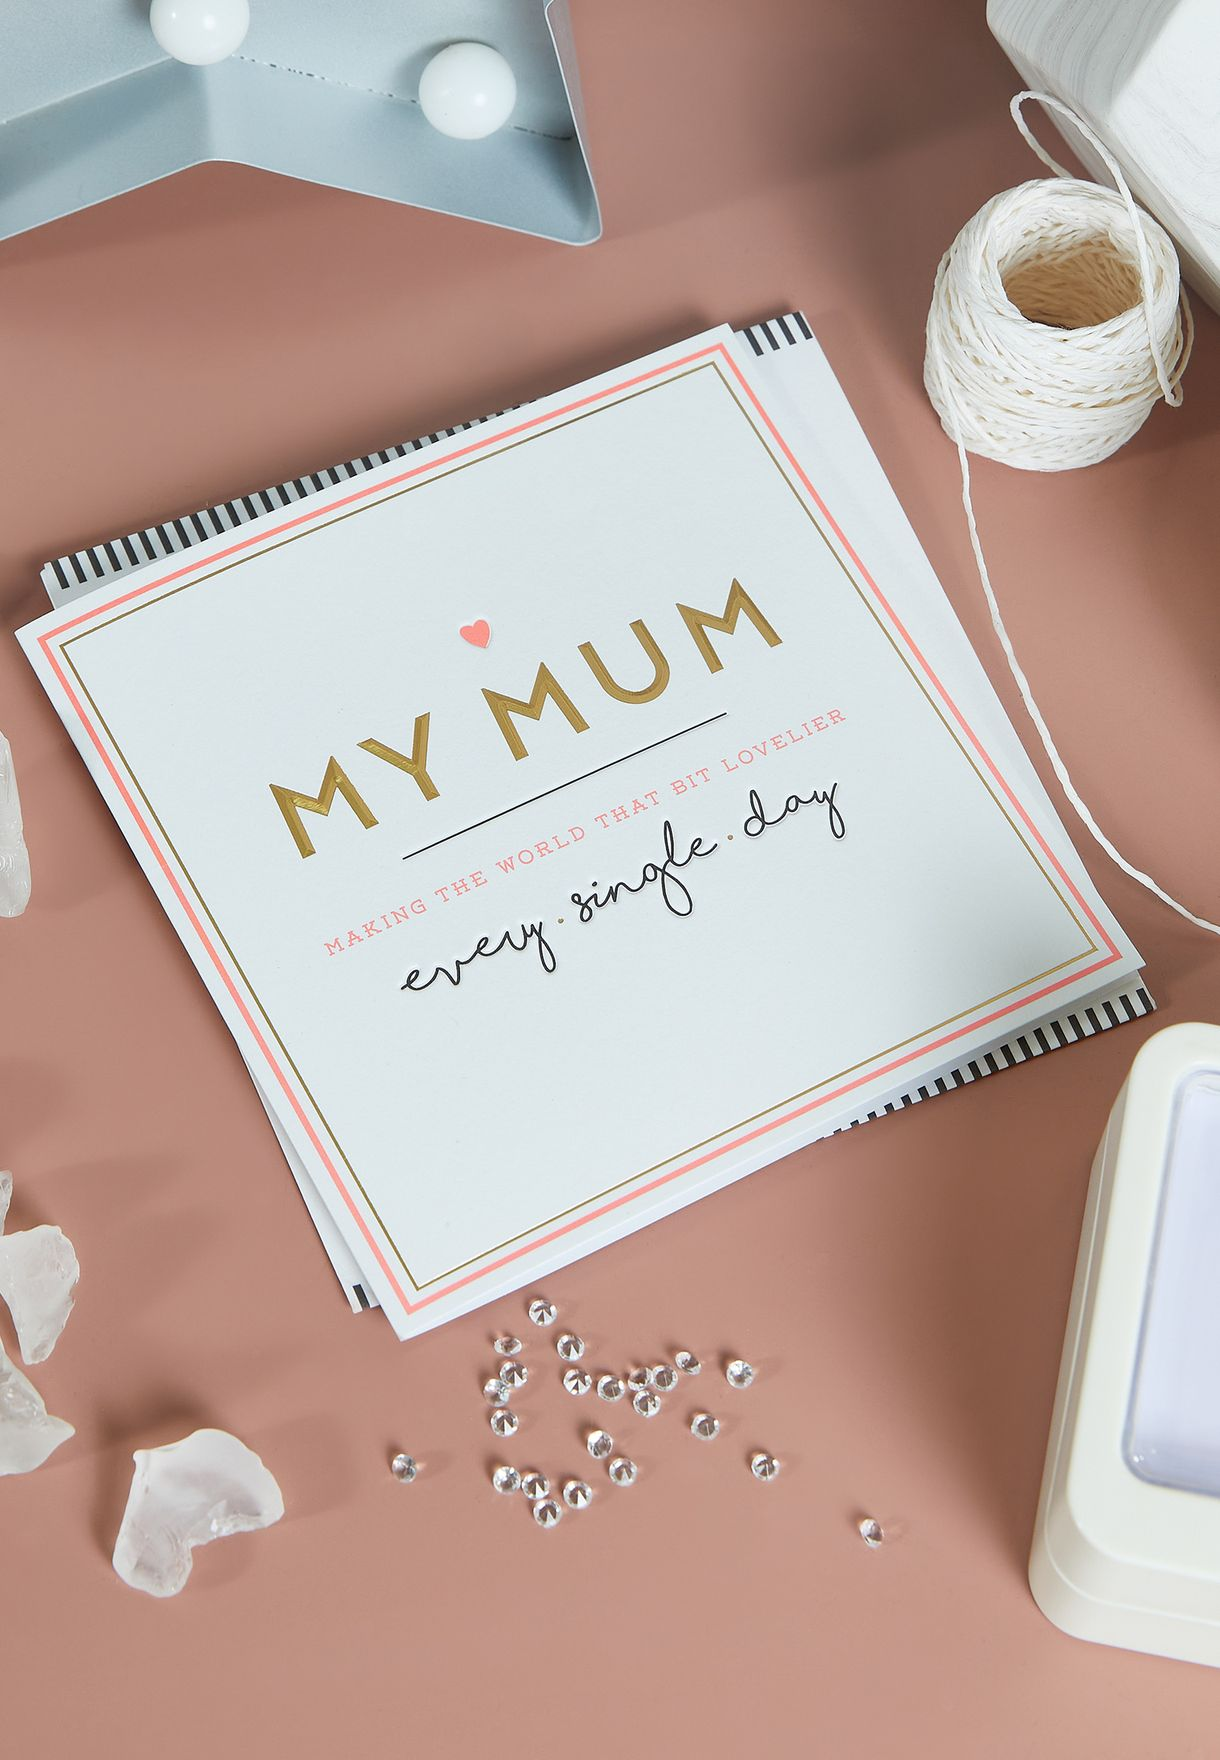 My Mum Mother's Day Card